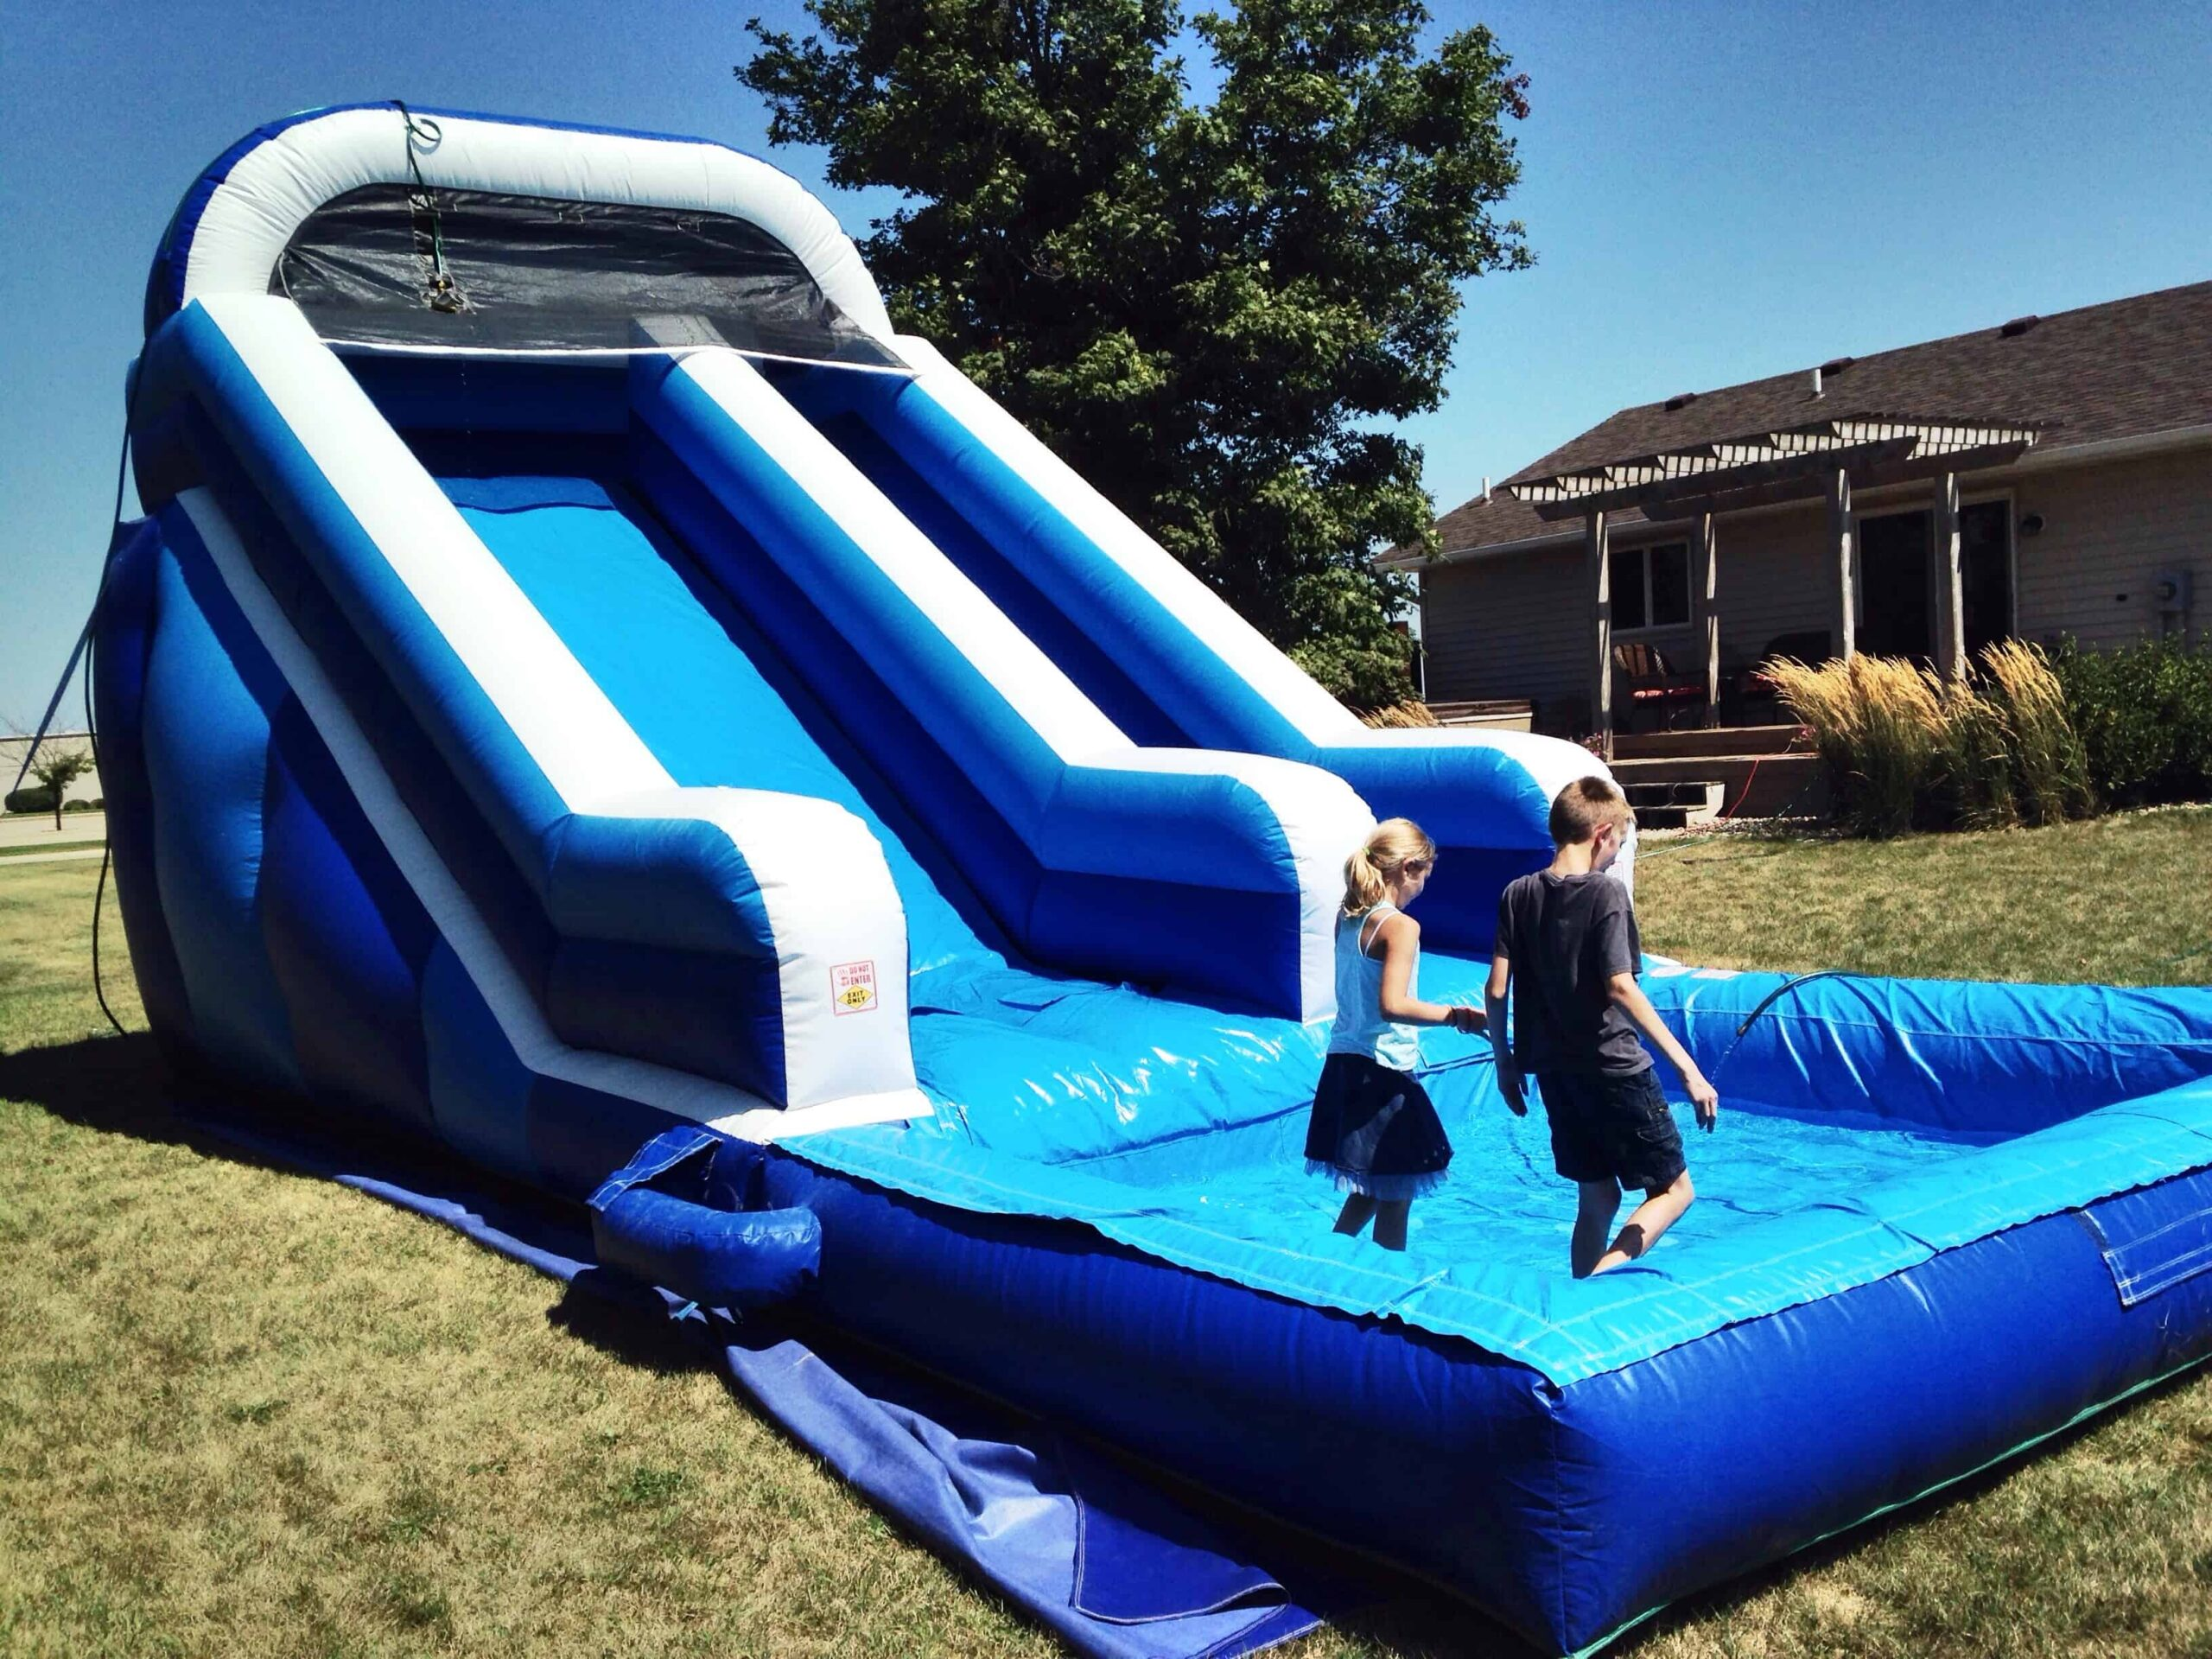 Photo of inflatable water slide with kids playing